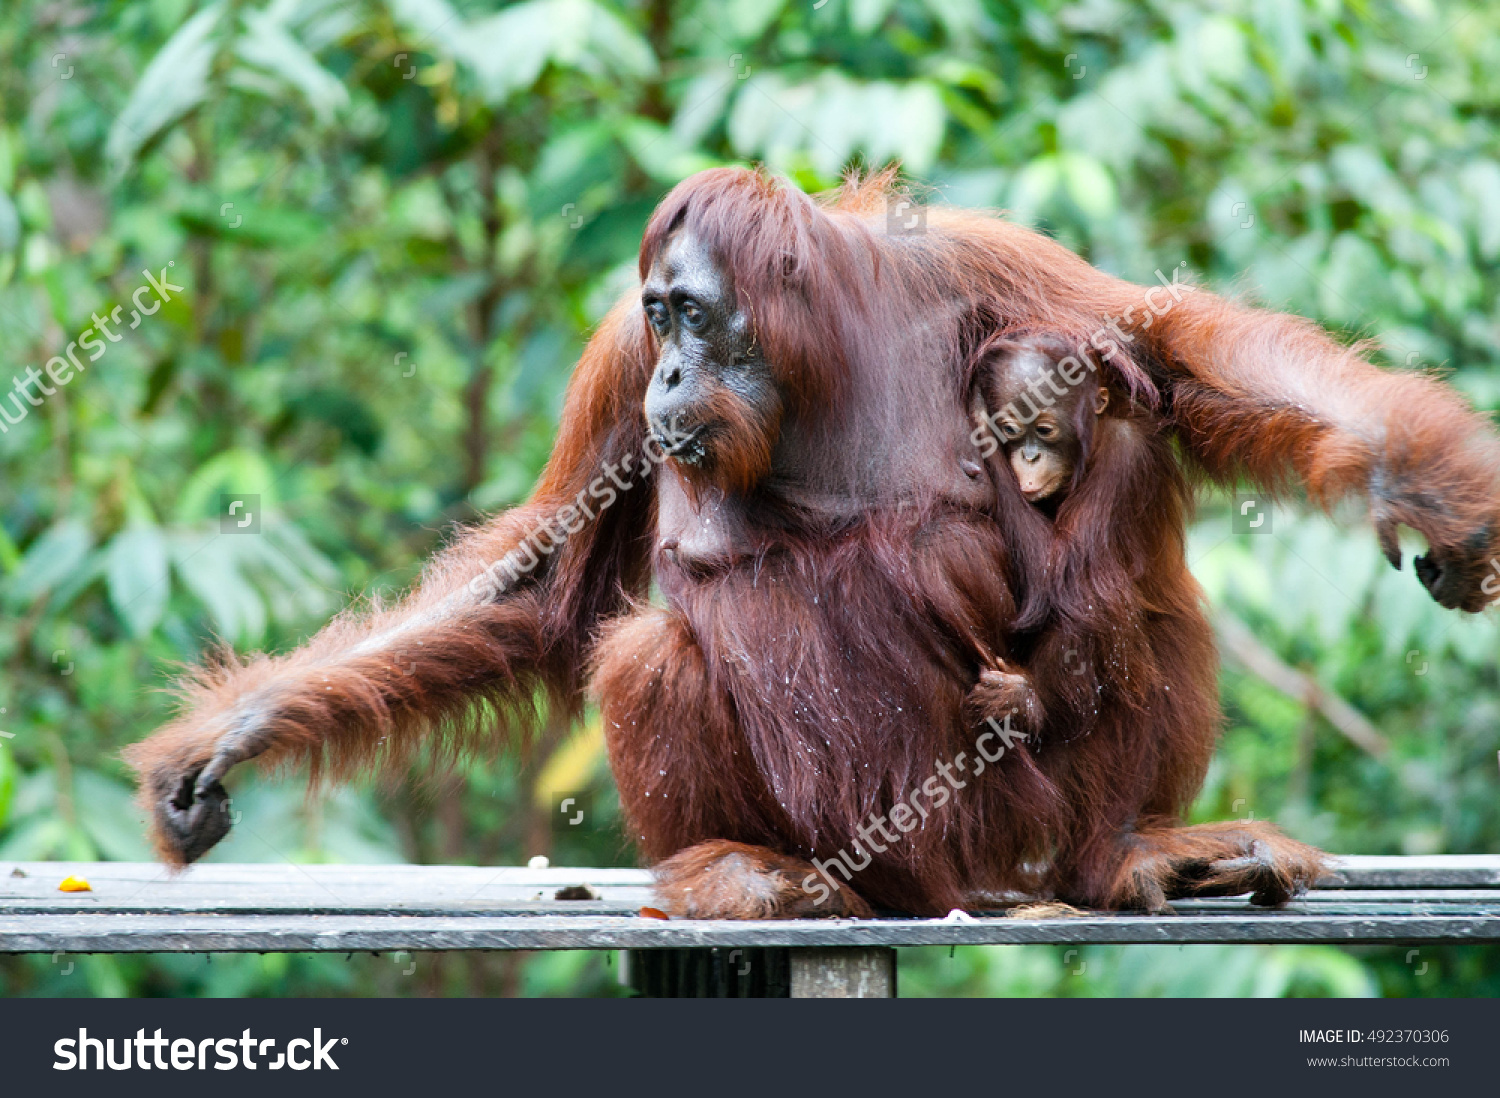 stock-photo-orangutan-and-her-orangutan-baby-in-tanjung-puting-national-park-kalimantan-492370306